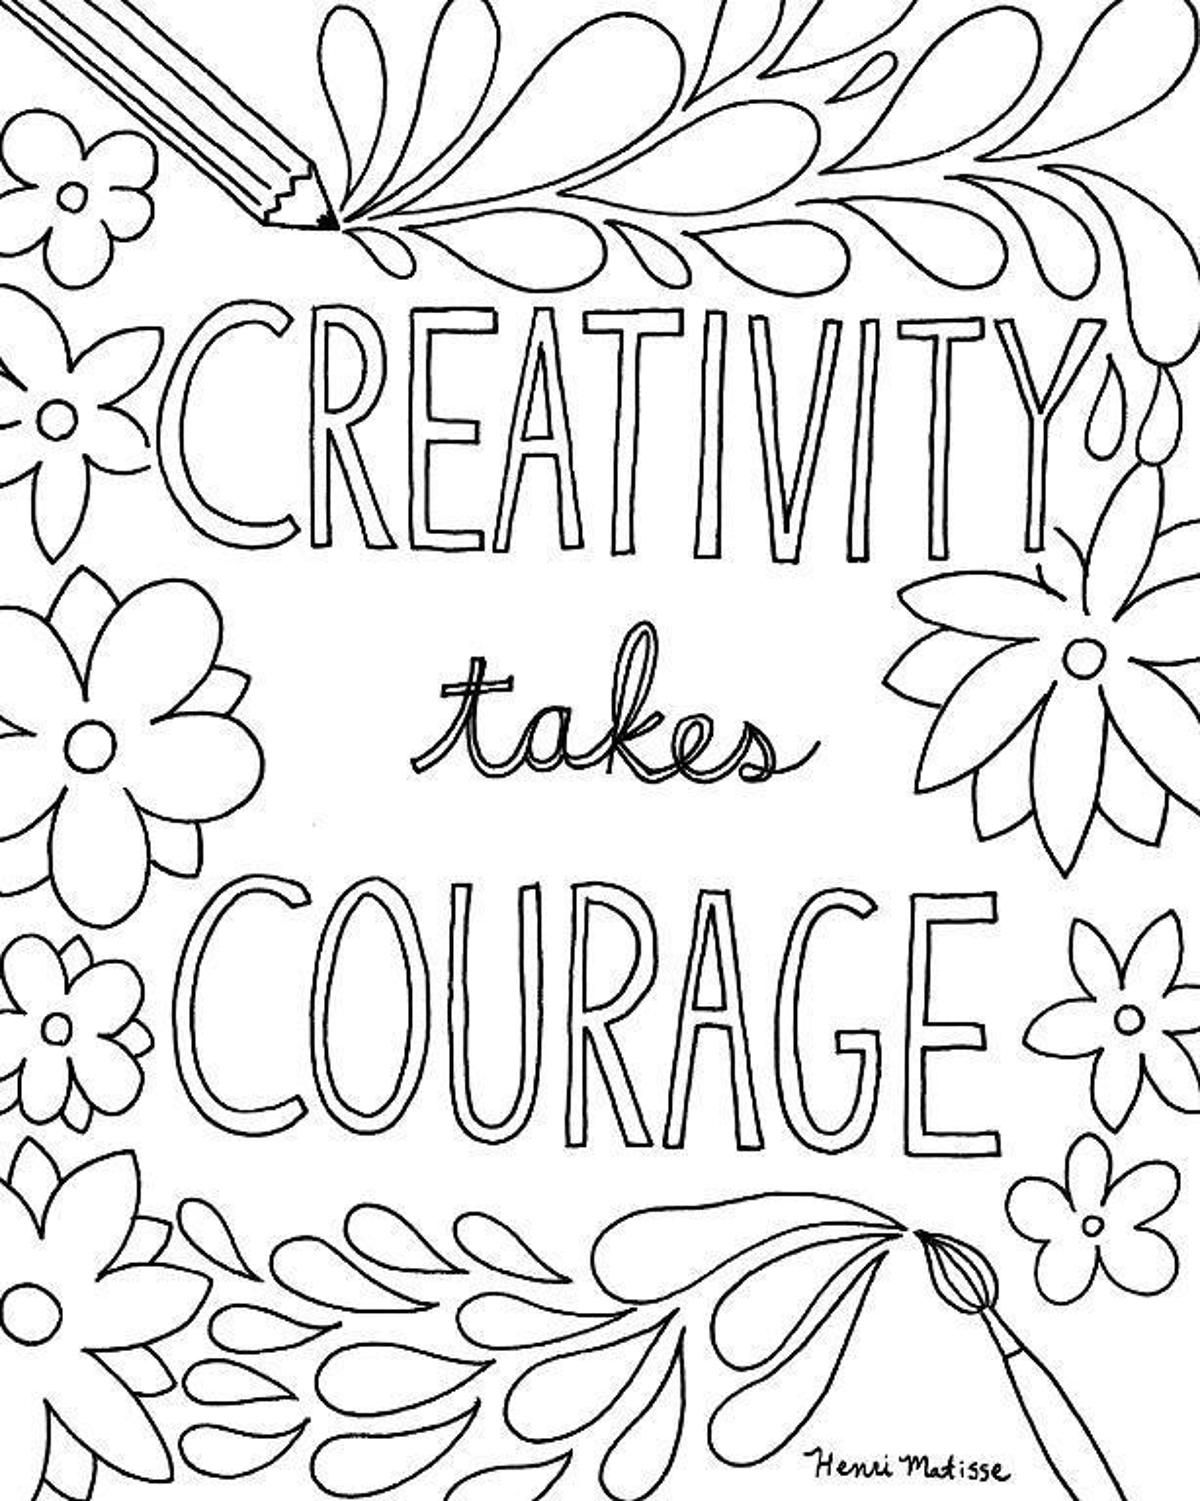 Creativity Takes Courage Coloring Page Quote Coloring Pages Inspirational Quotes Coloring Free Printable Quotes